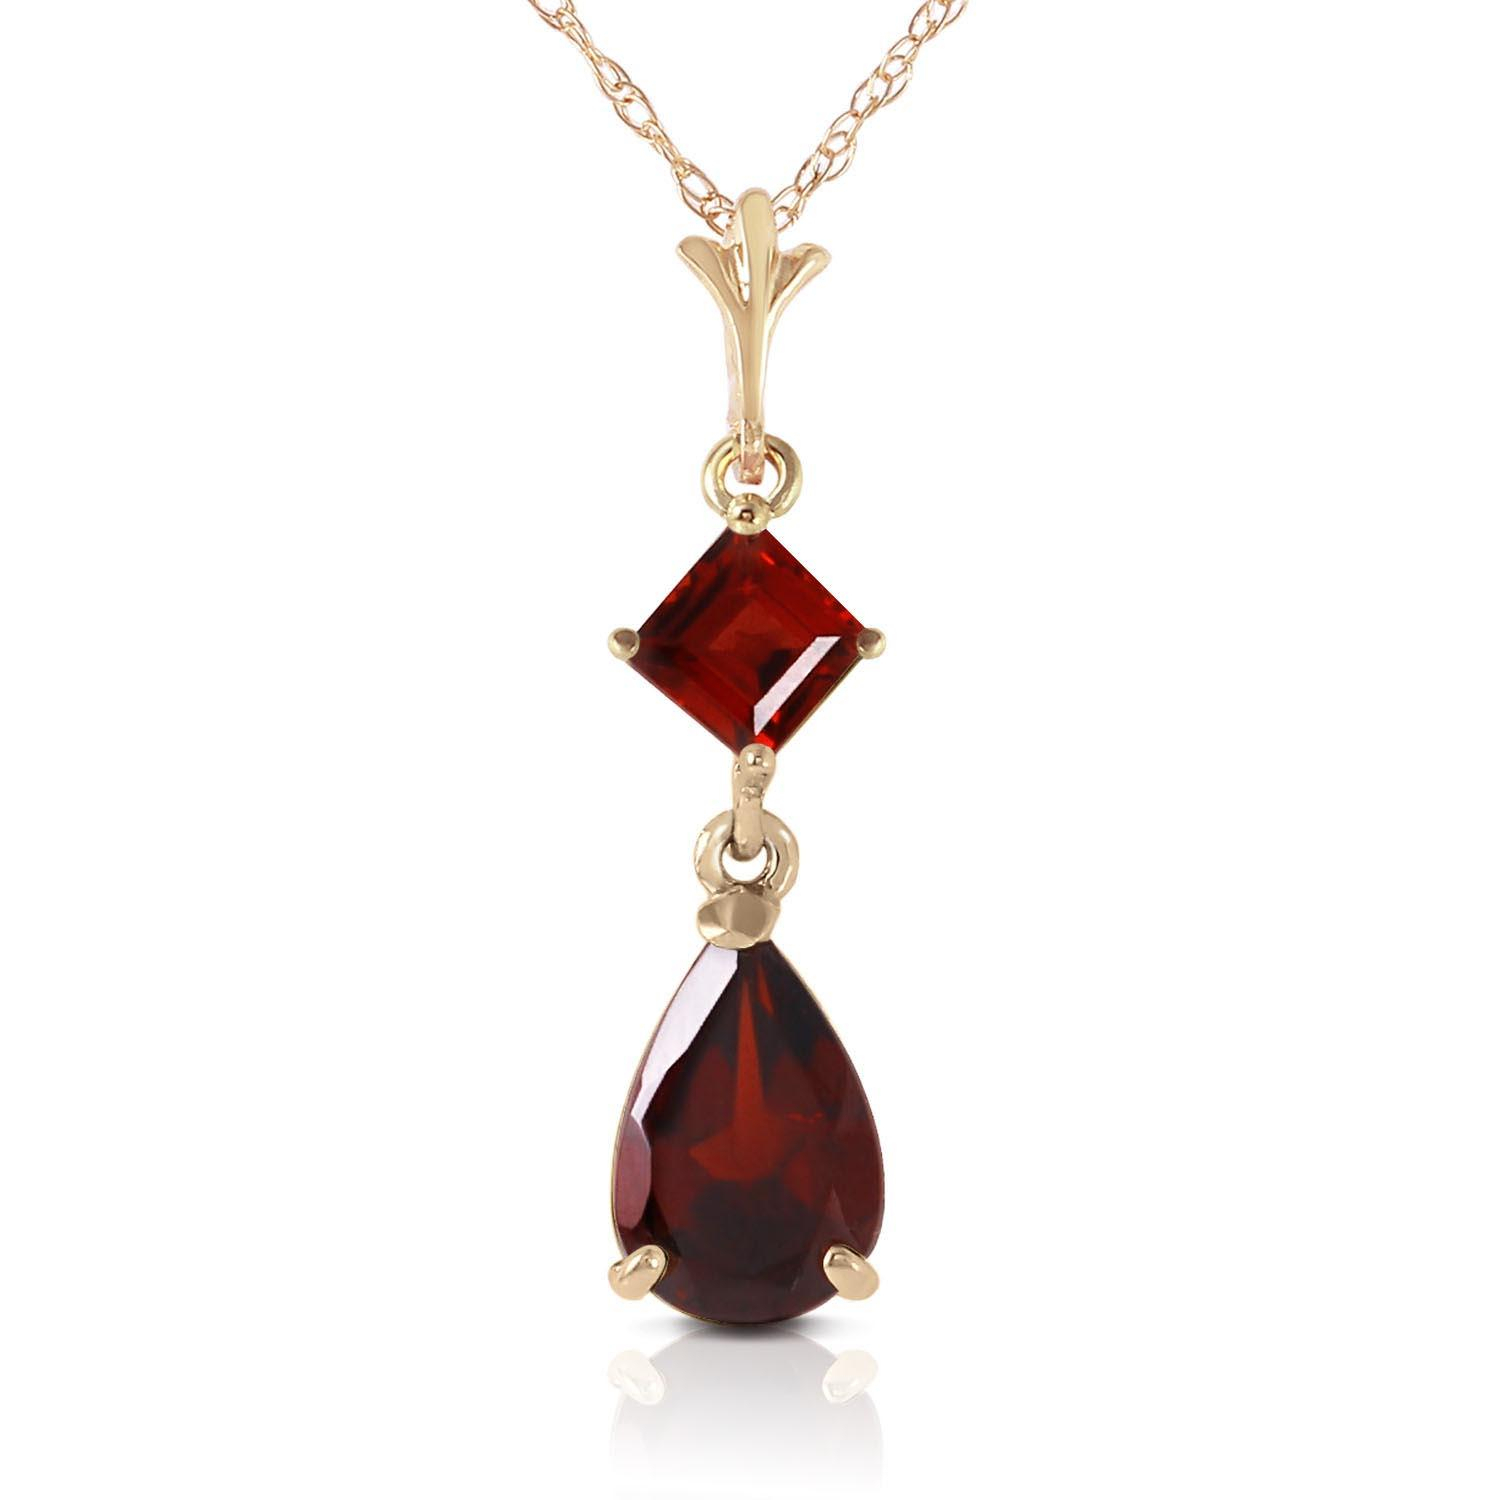 Garnet Droplet Pendant Necklace 2 Ctw In 9ct Gold Reviews | Qp Throughout 2019 Garnet January Droplet Pendant Necklaces (View 2 of 25)